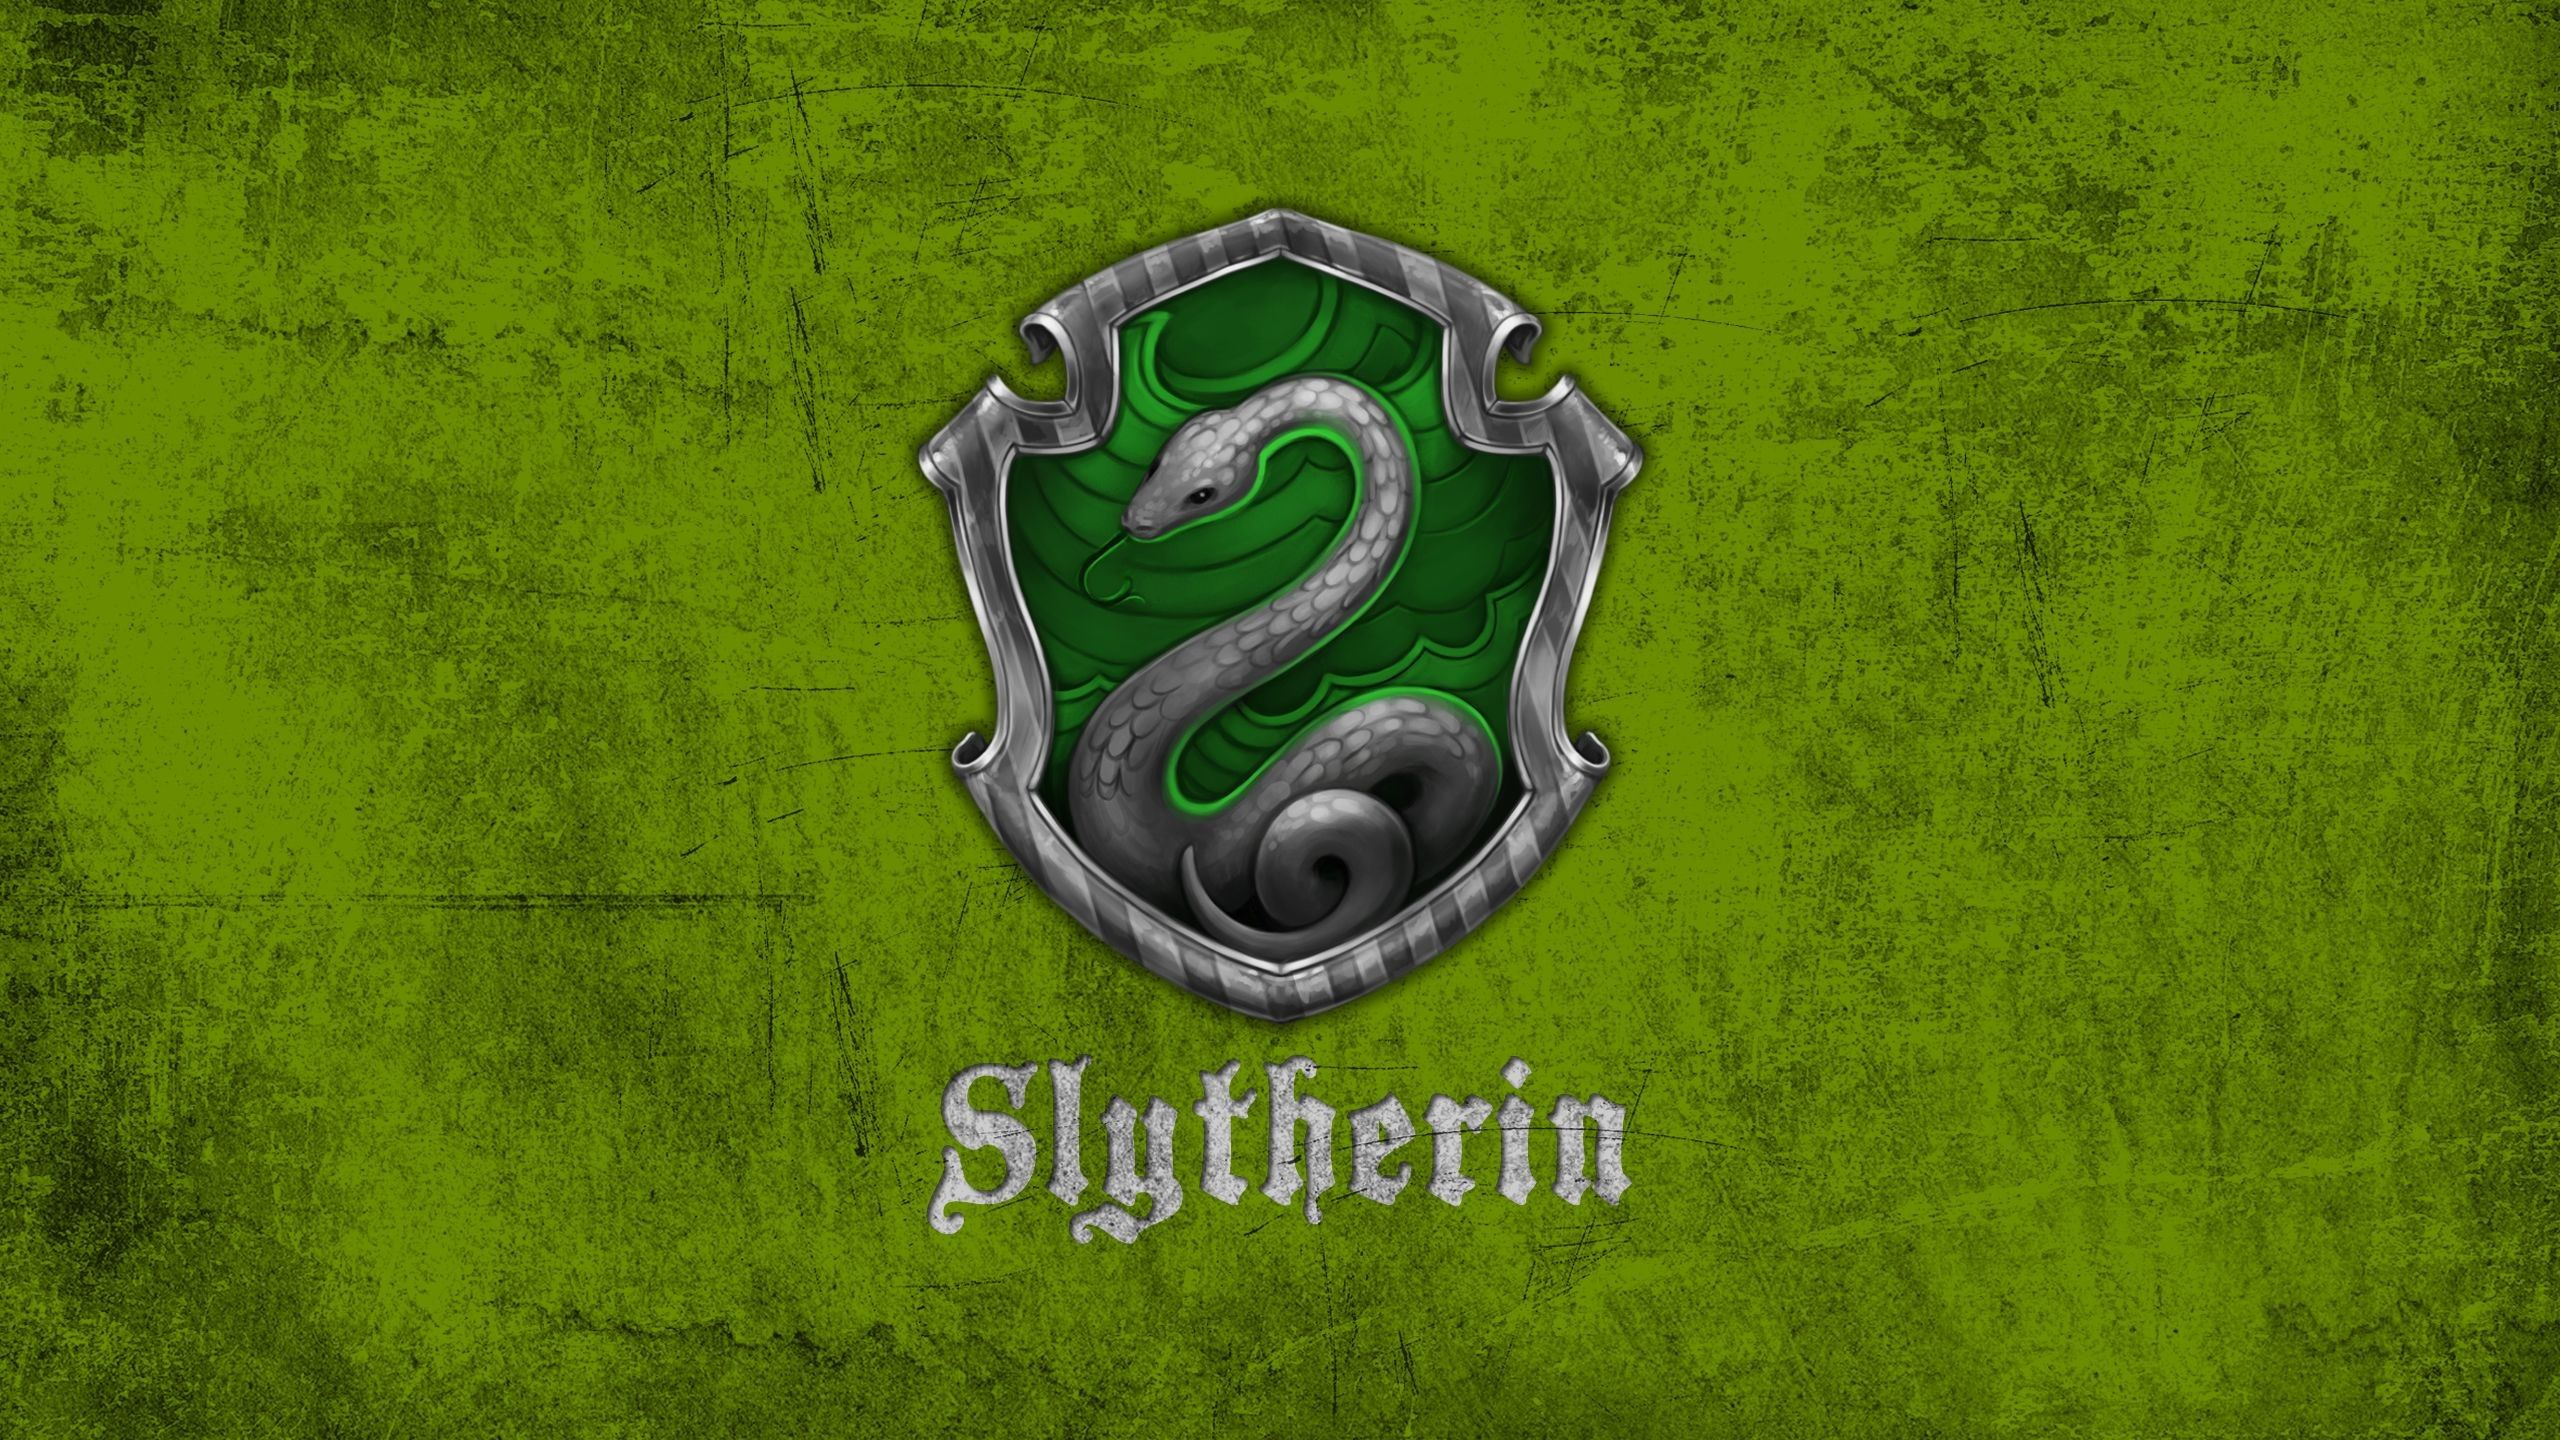 Slytherin Harry Potter Computer Wallpapers On Wallpaperdog